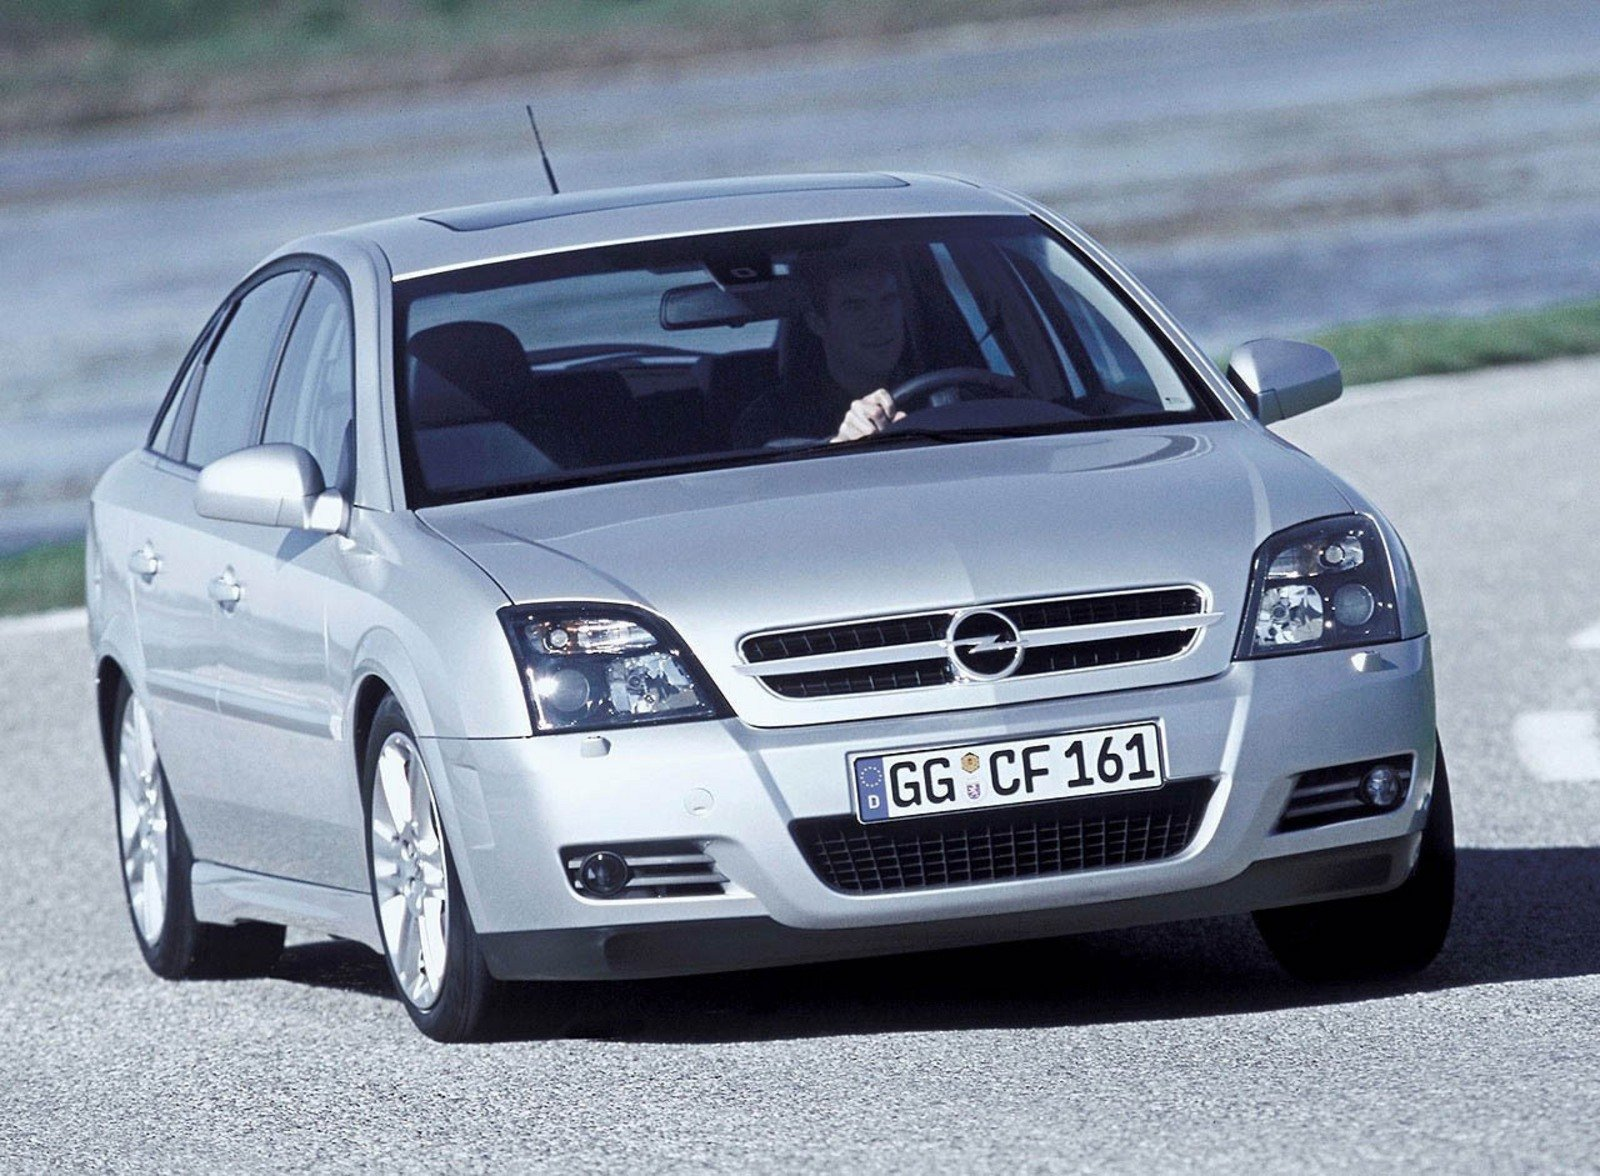 2003 opel vectra gts review gallery top speed. Black Bedroom Furniture Sets. Home Design Ideas